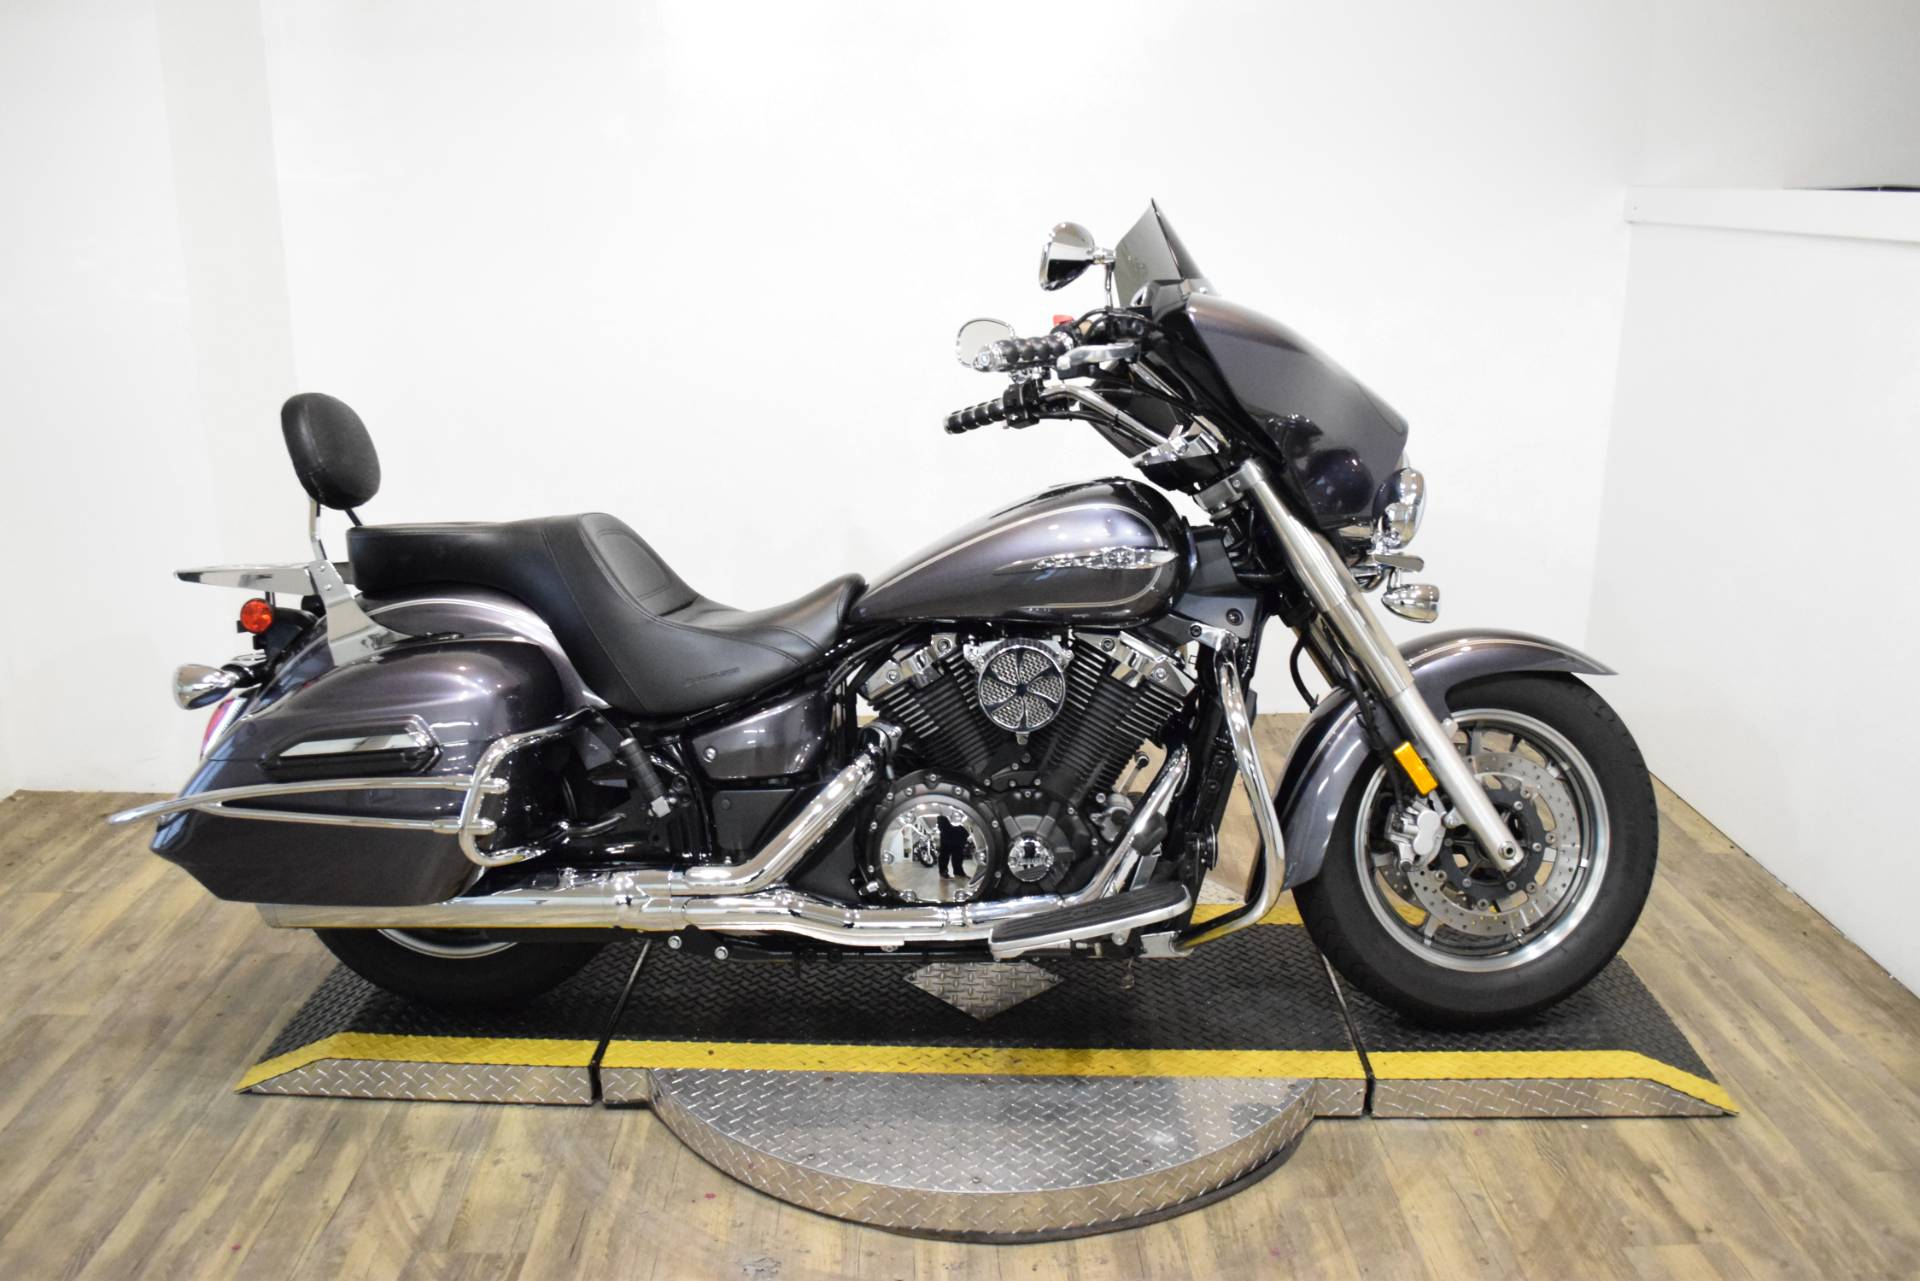 2014 Yamaha V Star 1300 Deluxe in Wauconda, Illinois - Photo 1